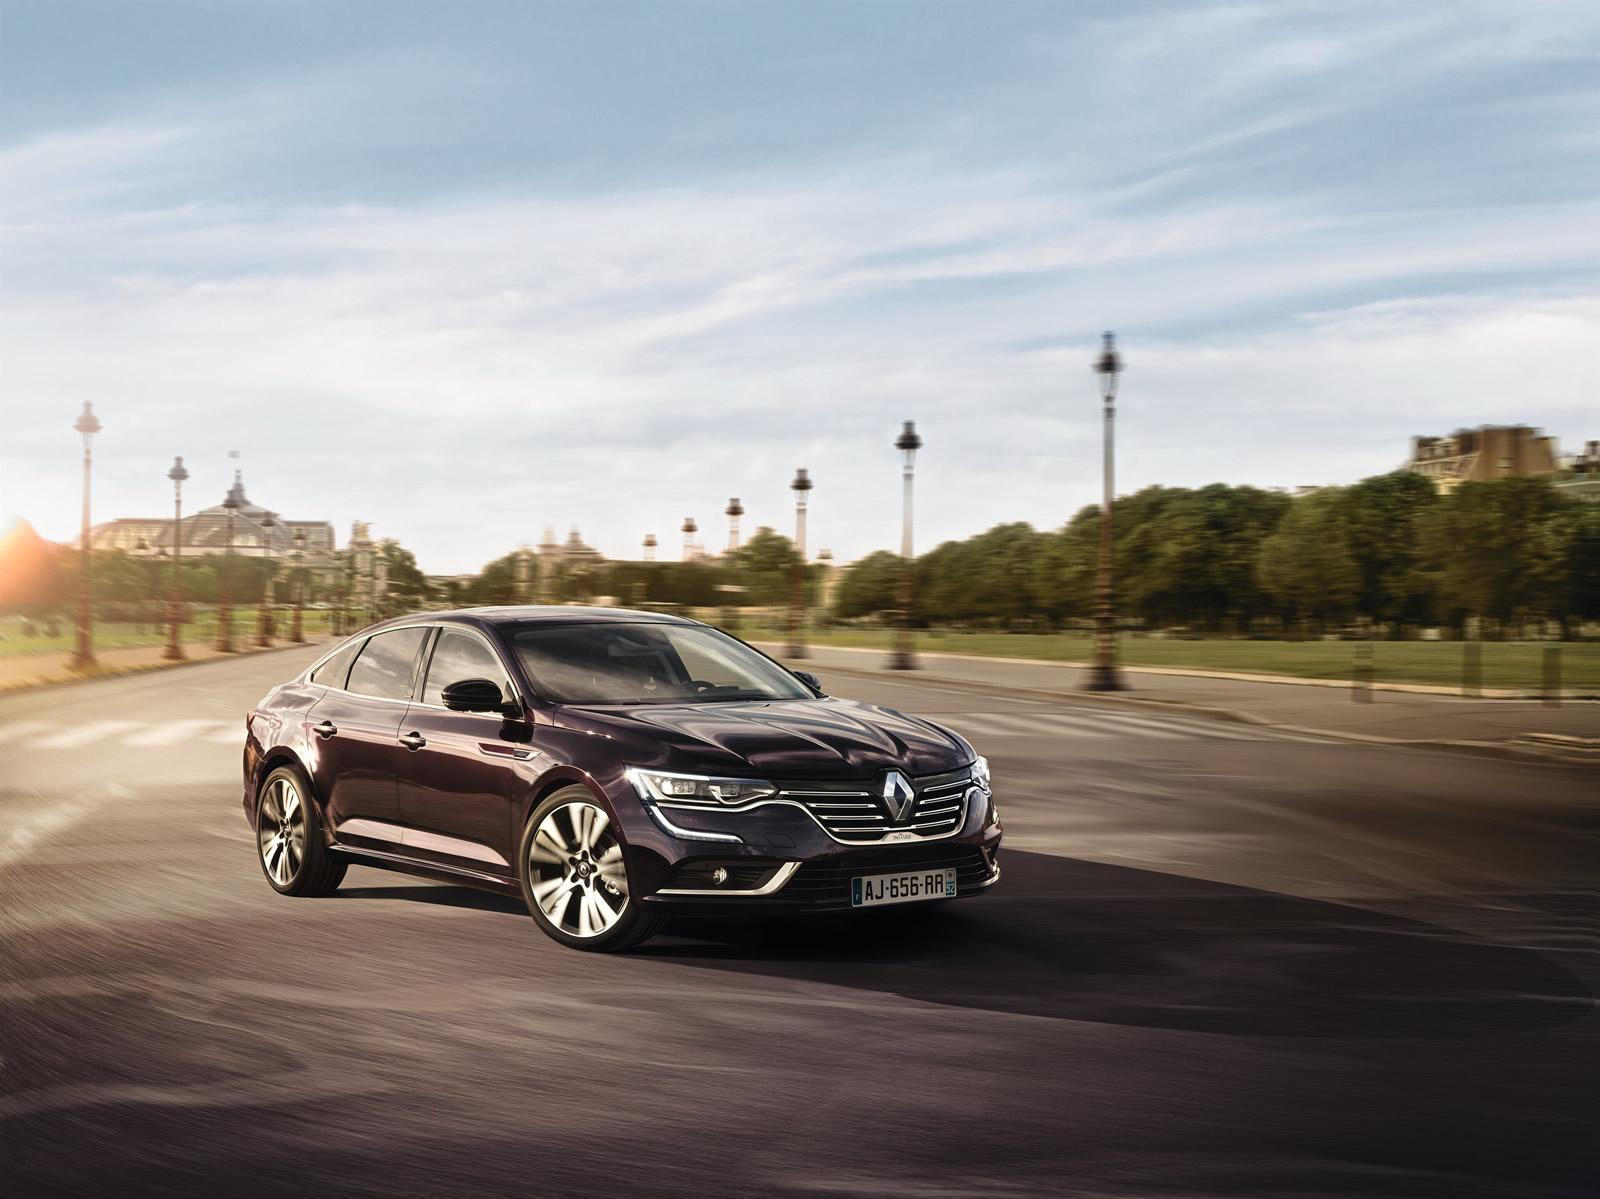 The Prices for Renault Talisman